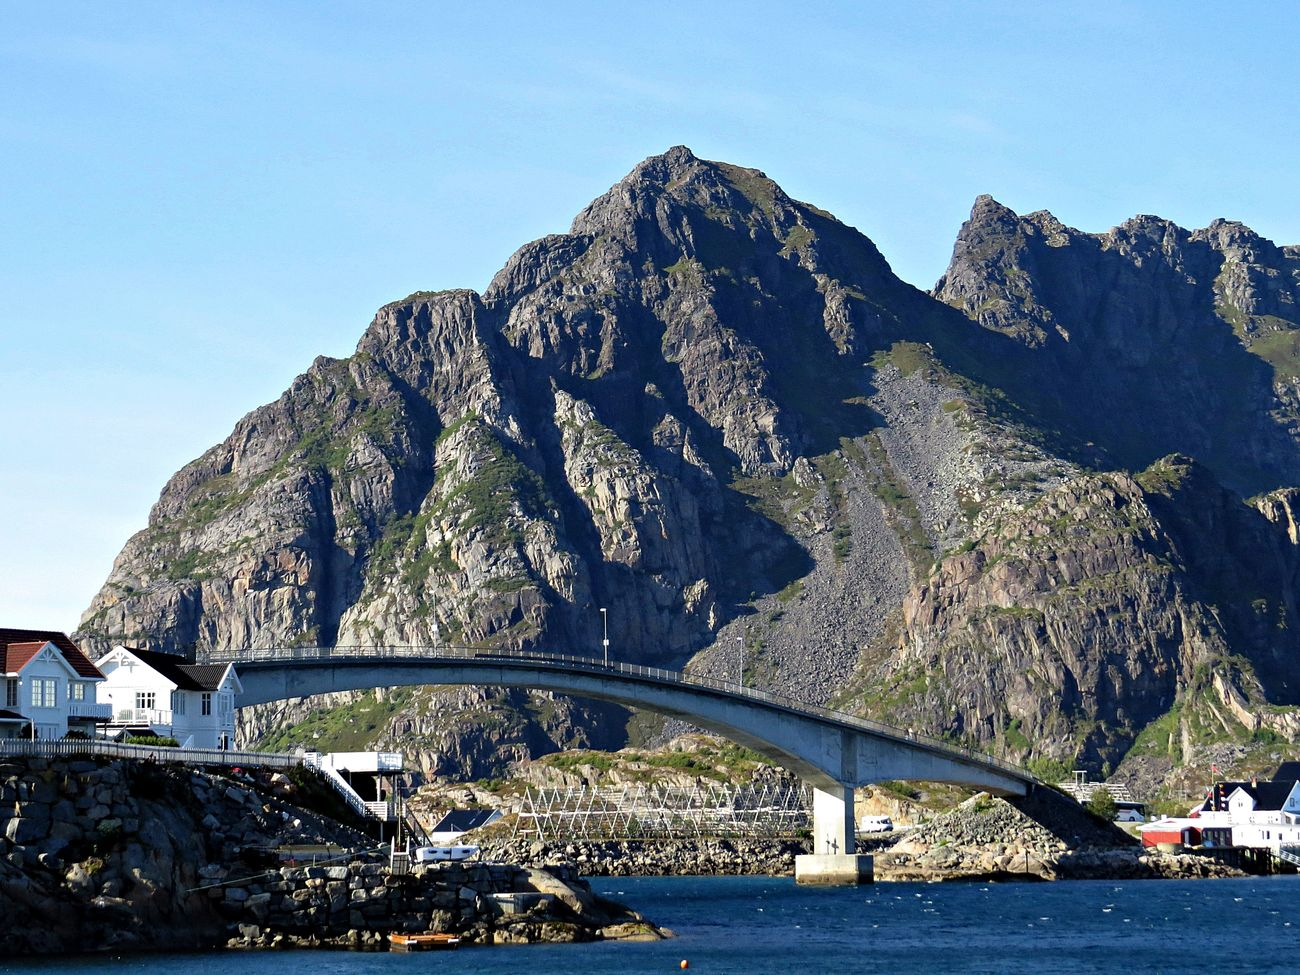 Architecture Beauty In Nature Bridge Day Destination Eye4photography  EyeEm Traveling Henningsvær Lofoten Mountain Mountains Nature Outdoors Transportation Travel Destinations Turistic Places Water